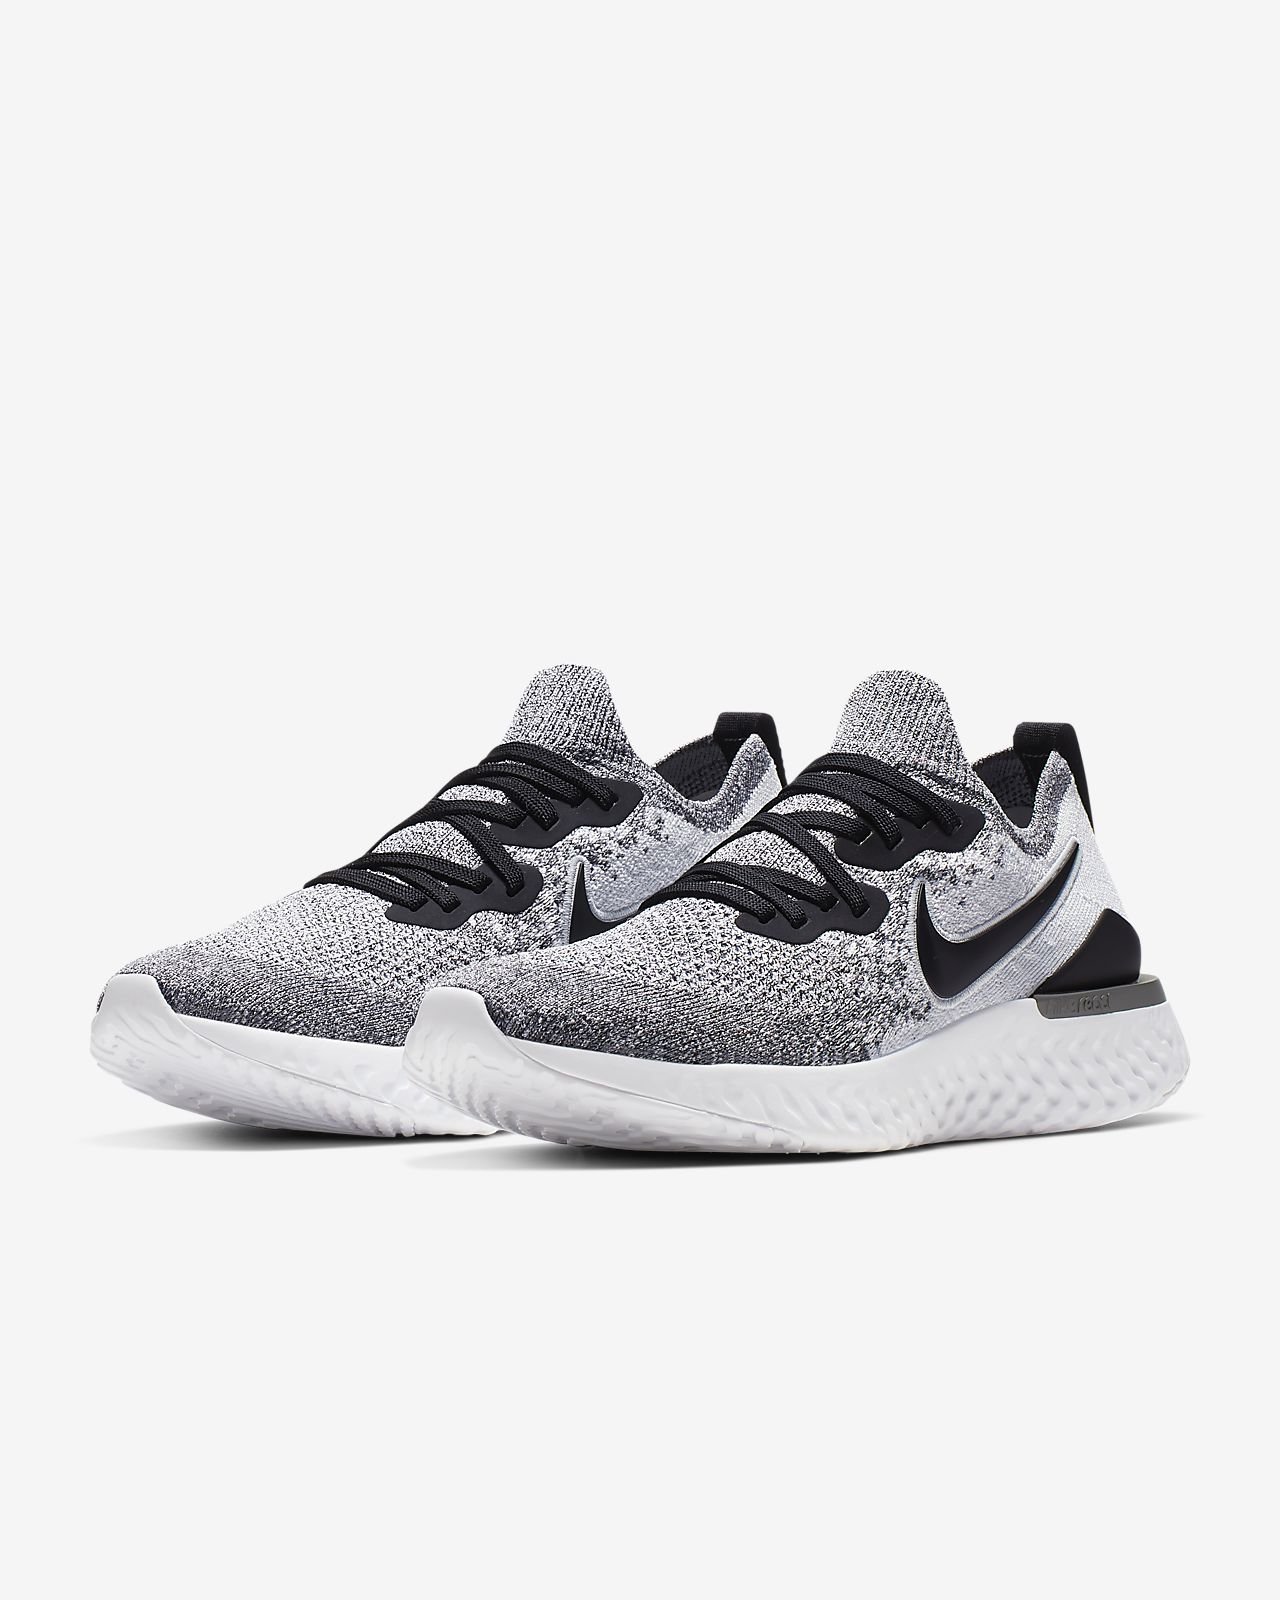 Nike Epic React Flyknit GS Nike Epic React Flyknit 2 Women's Running Shoe. Nike SG